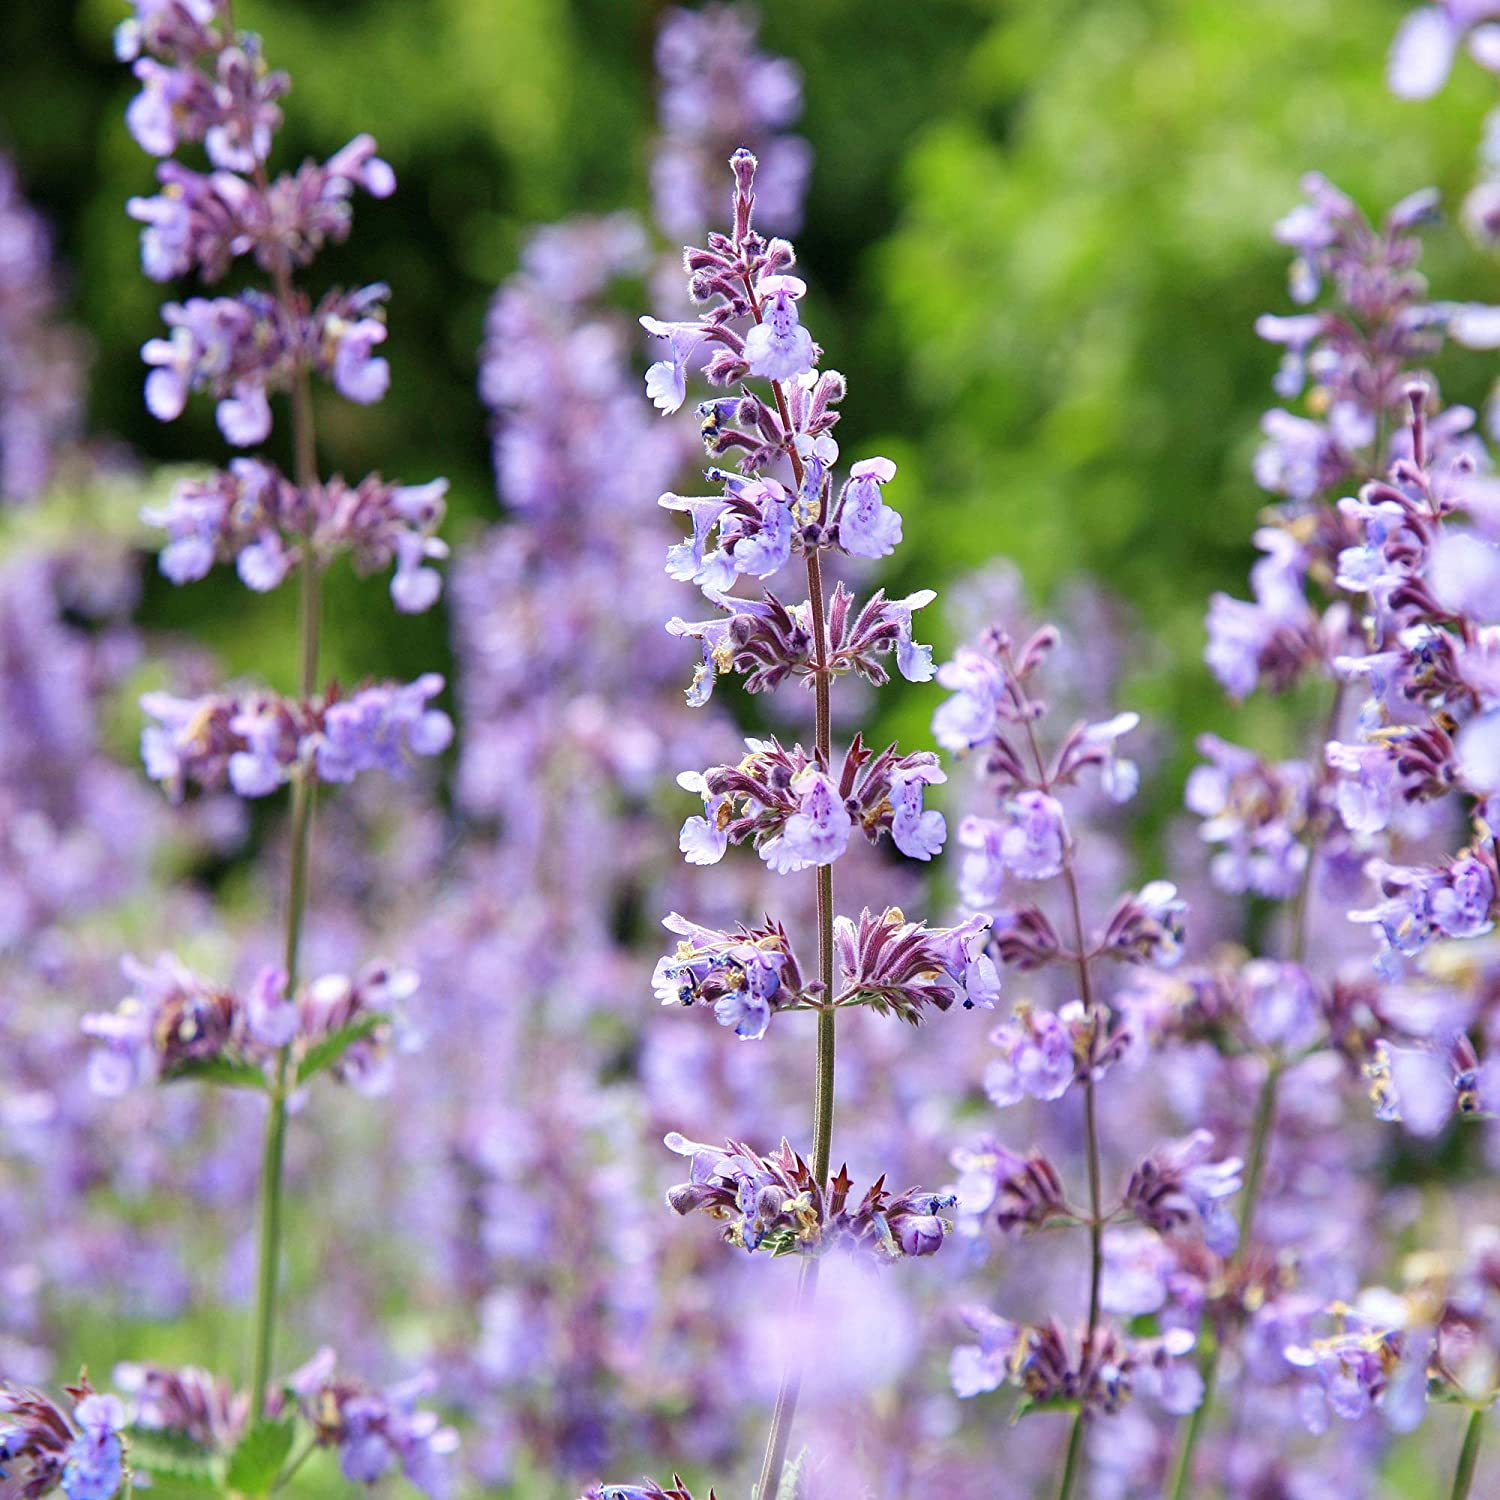 Special sale item Outsidepride Catnip Seed - Daily bargain sale OZ 1